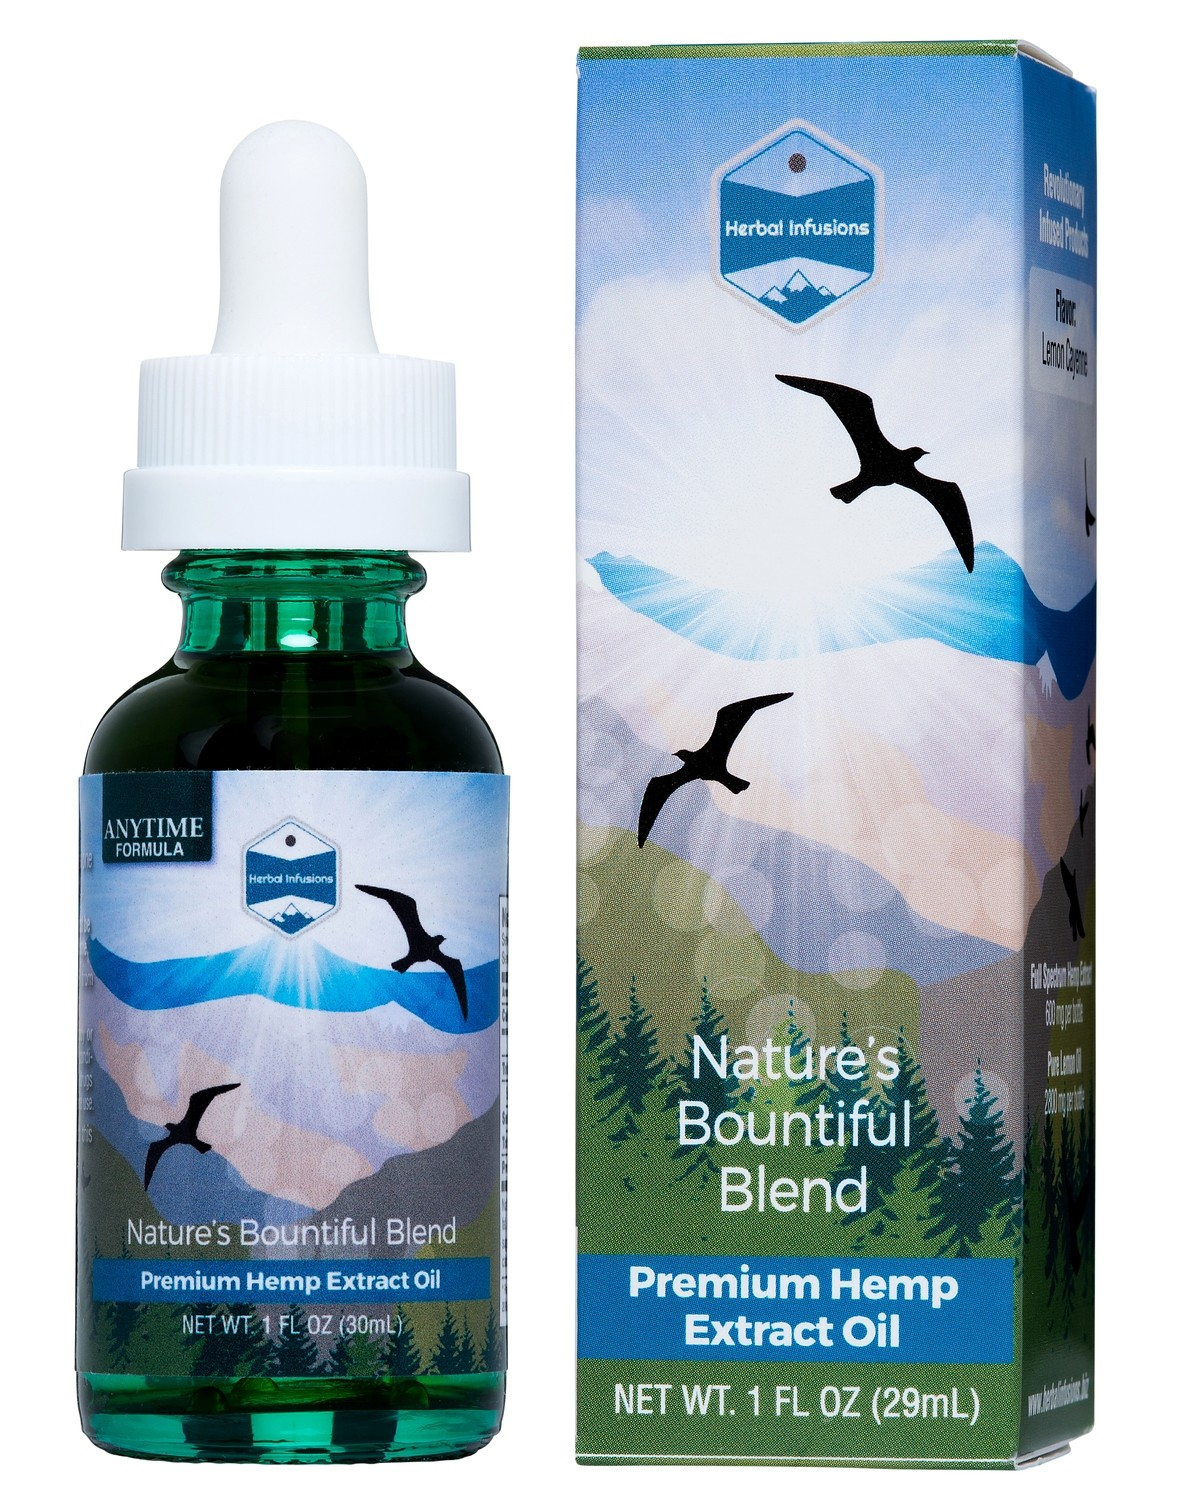 Nature's Bountiful Blend Tincture